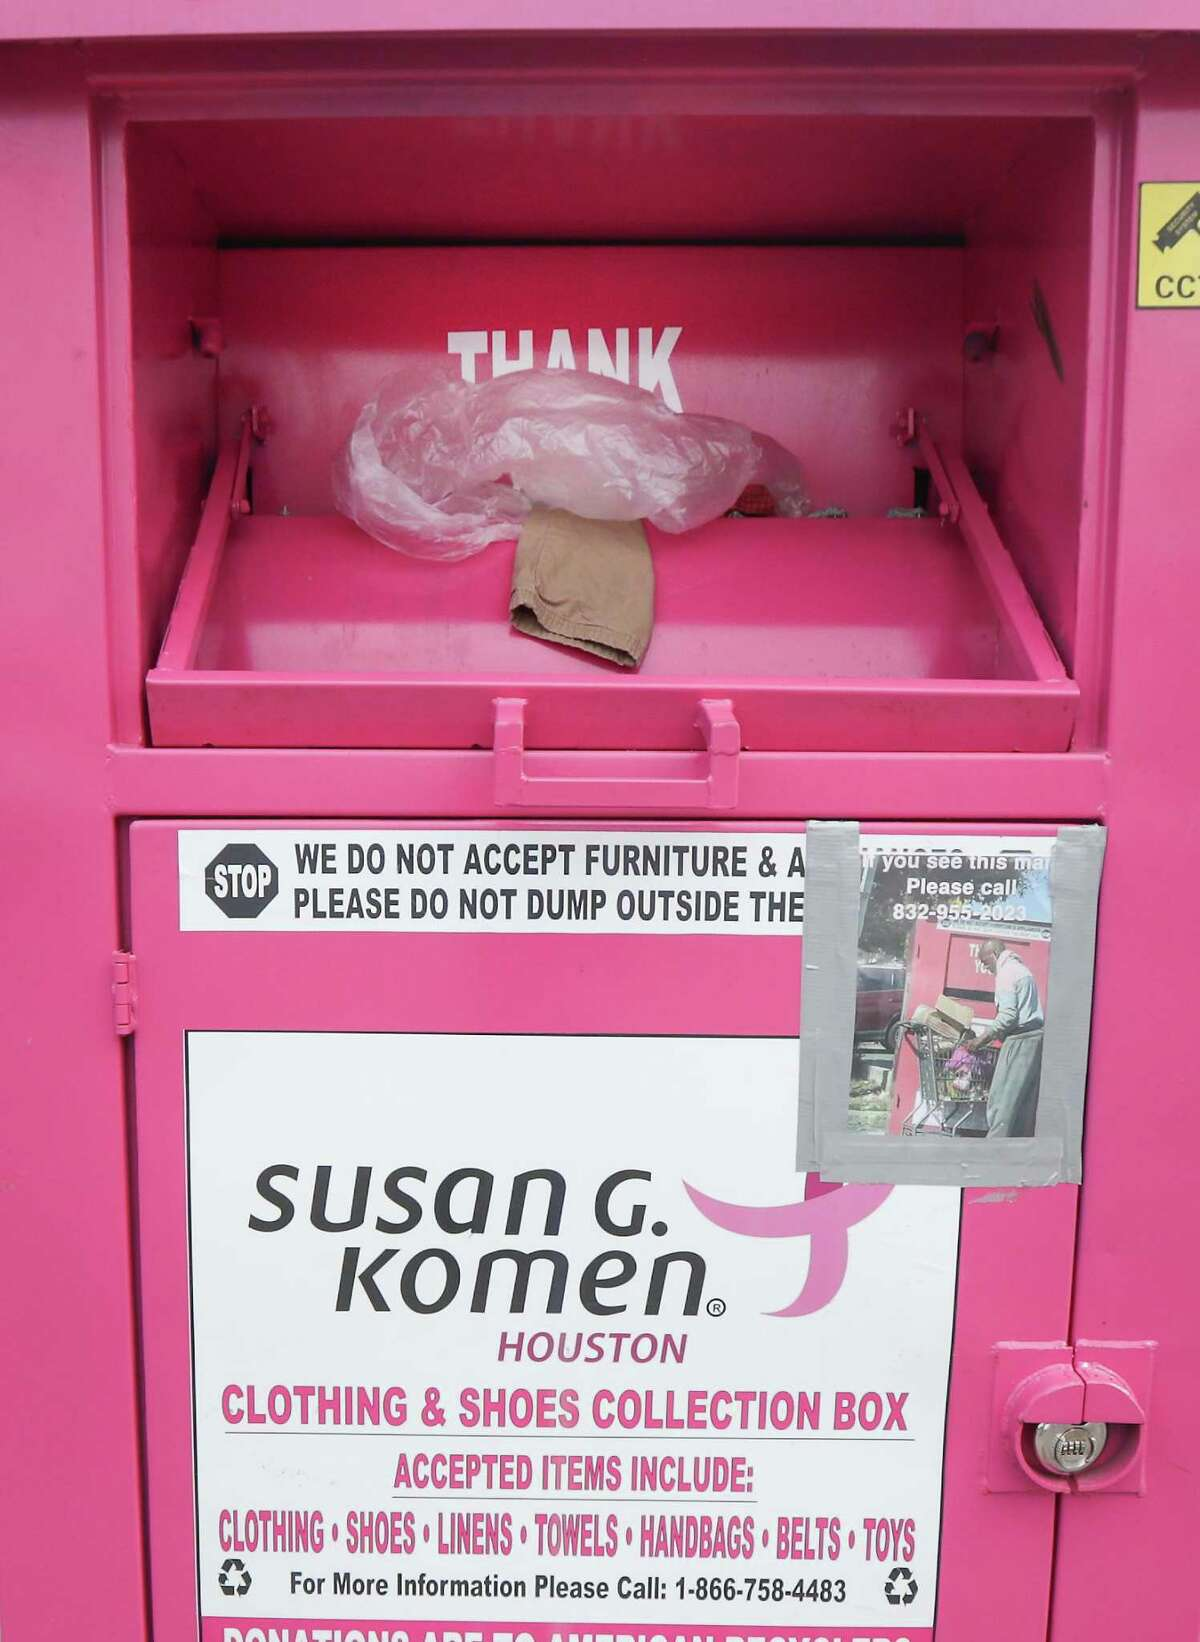 A Susan G. Komen for the Cure donation bin at Wilmington St., and Cullen Blvd Tuesday, May 4, 2021, in Houston. The City may start regulating the donation bins.